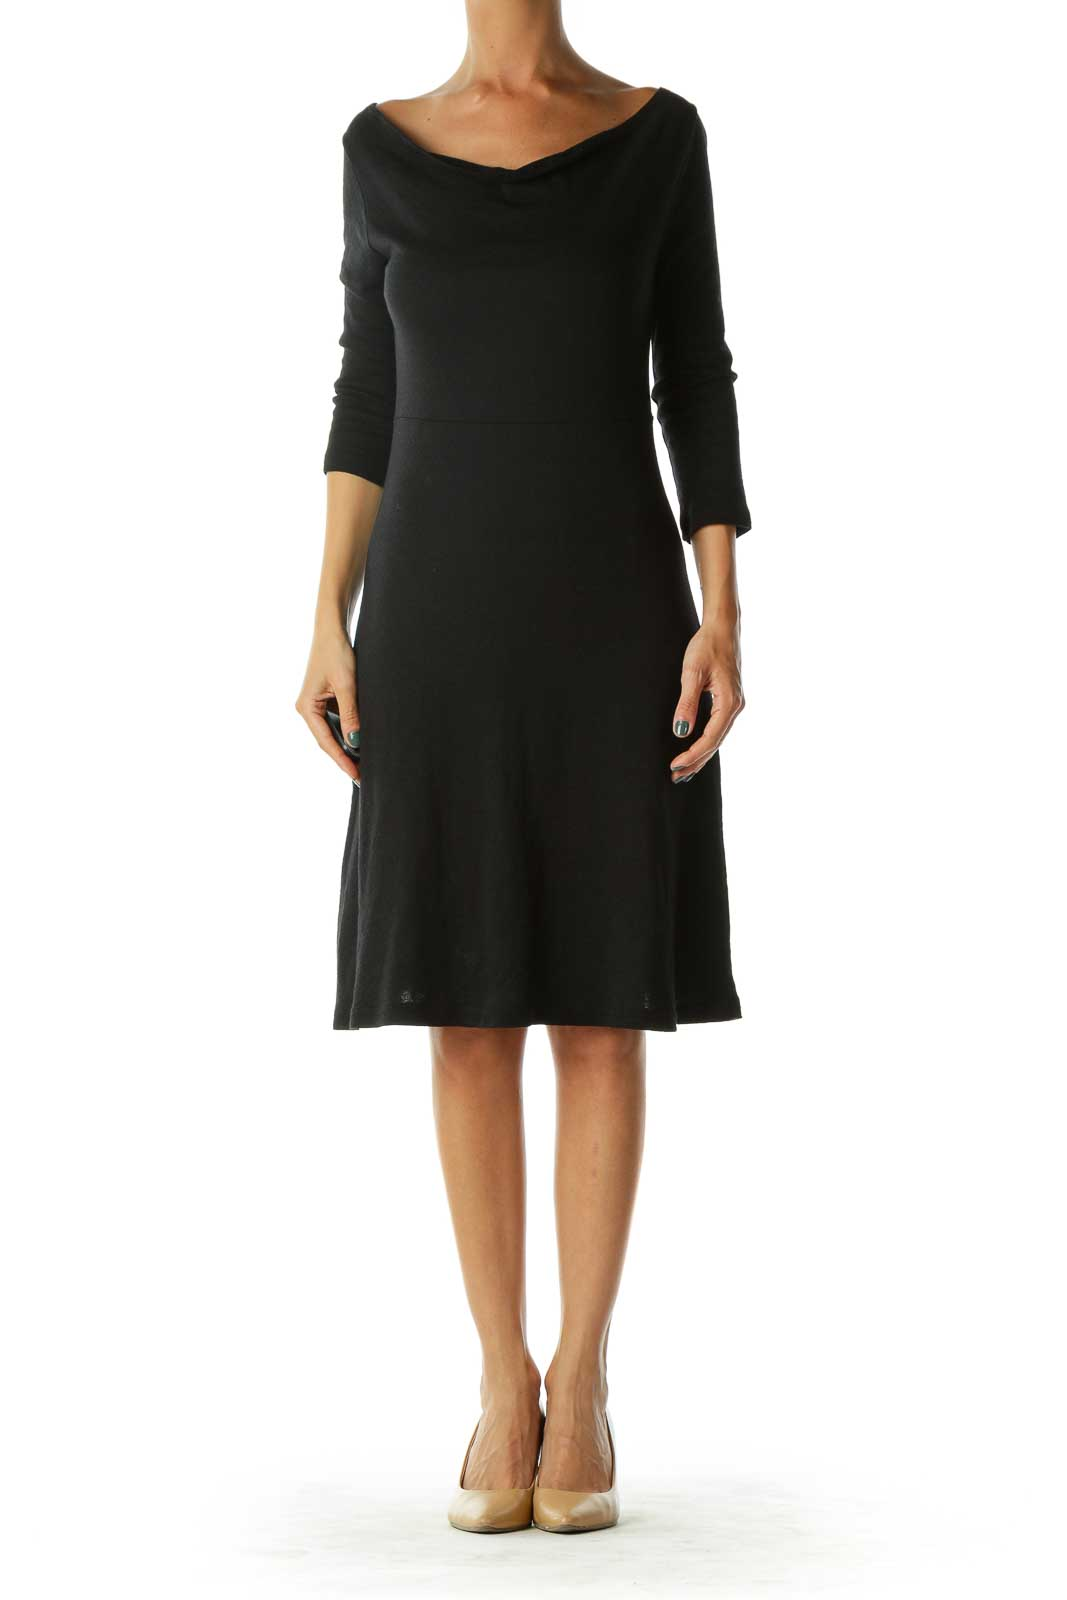 Black Stretchy Cotton Jersey Dress